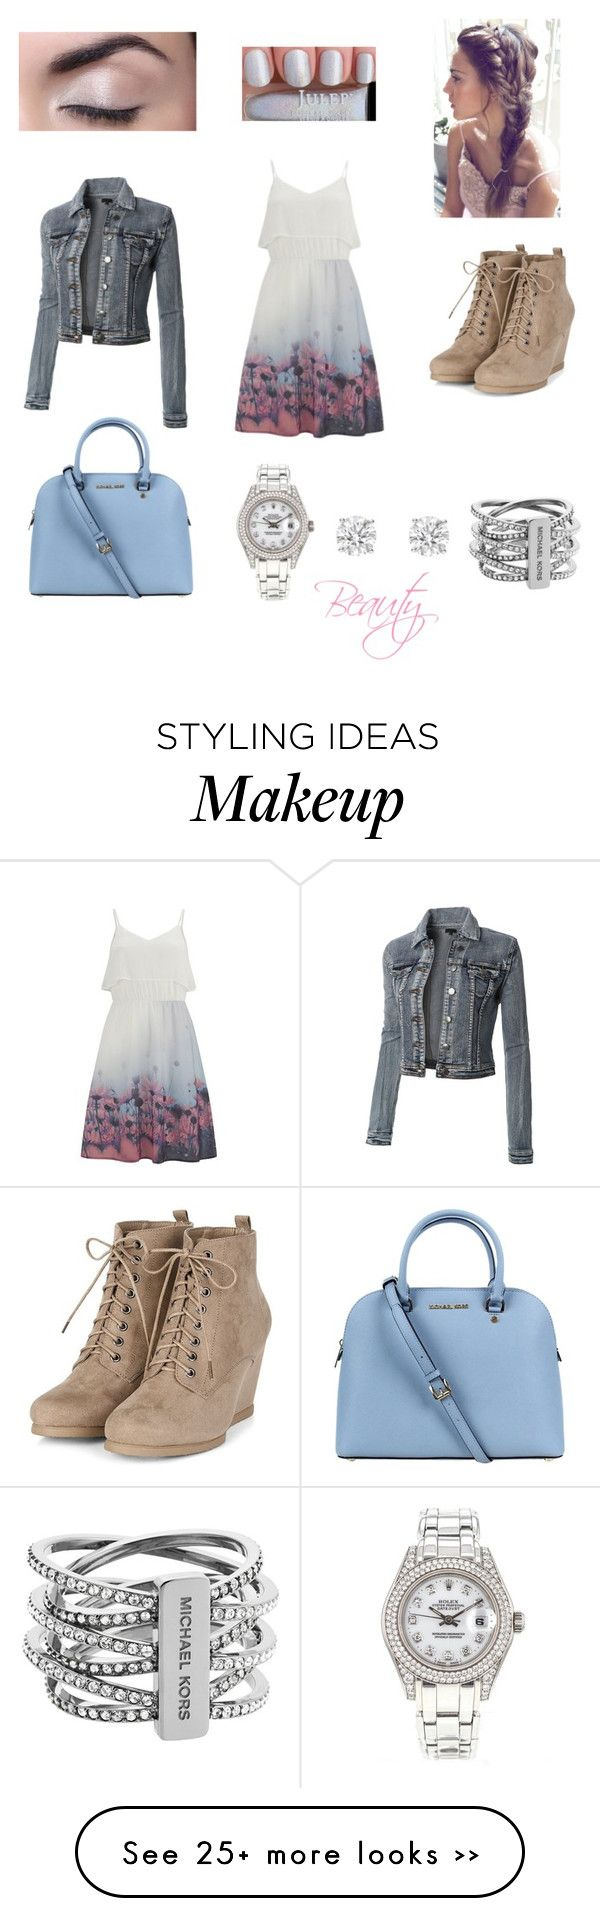 """""""#beauty"""" by lovinfashion247 on Polyvore featuring Vero Moda, Michael Kors, Rolex and cute"""